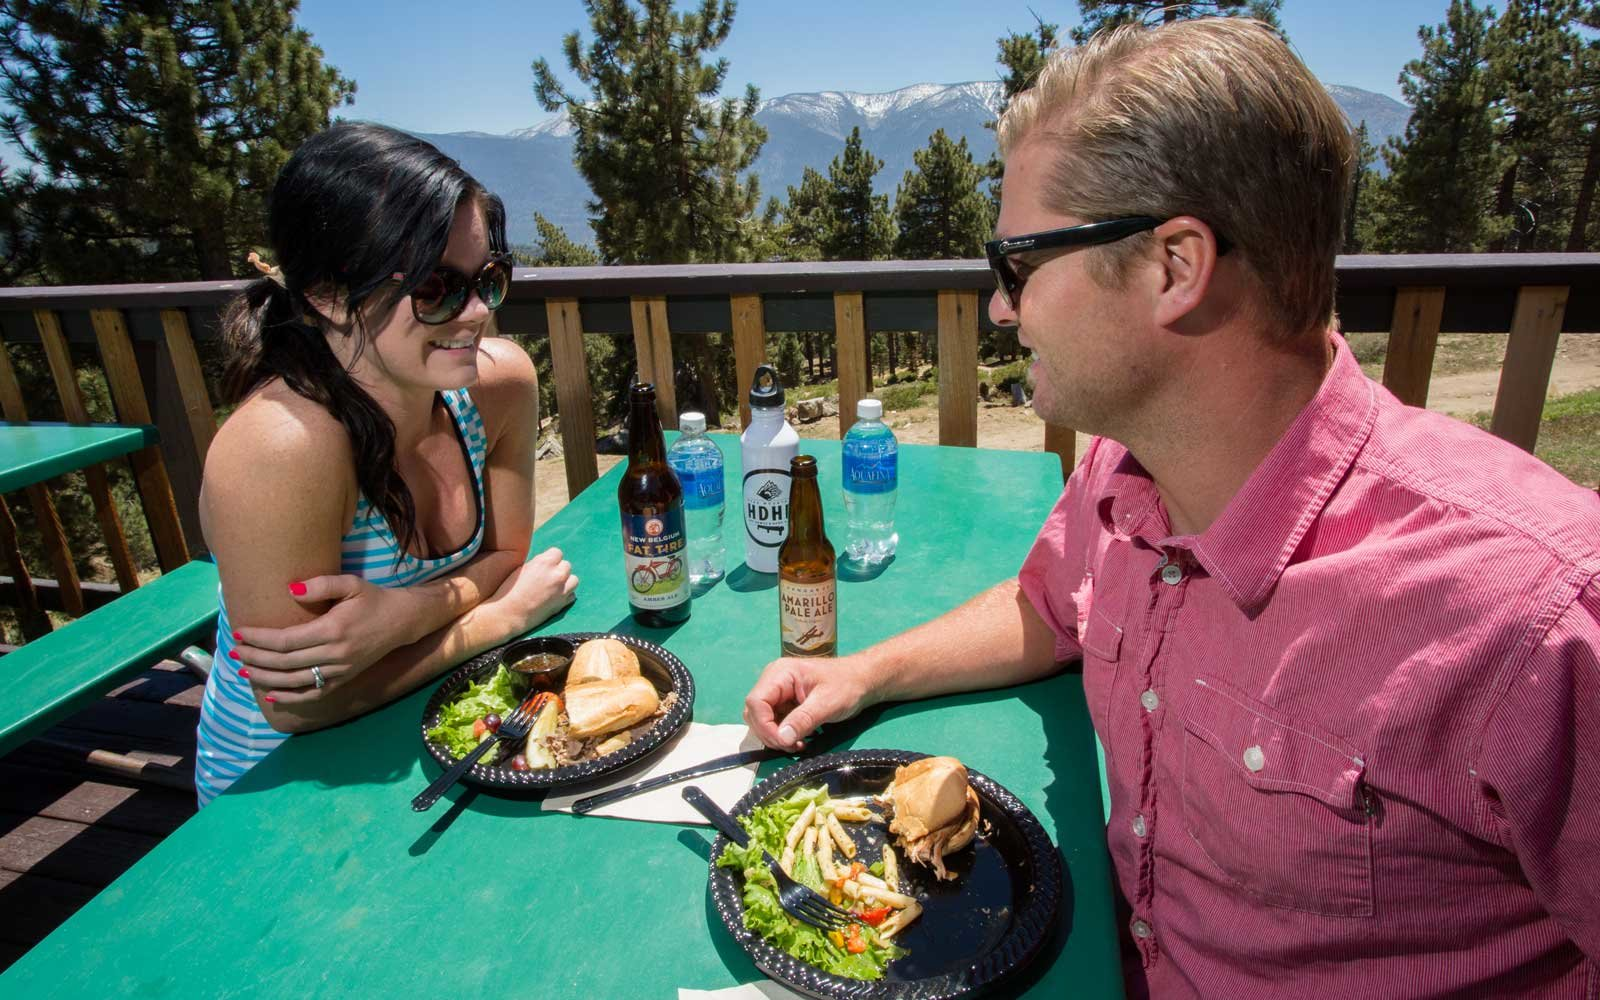 Dining at the ski mountains